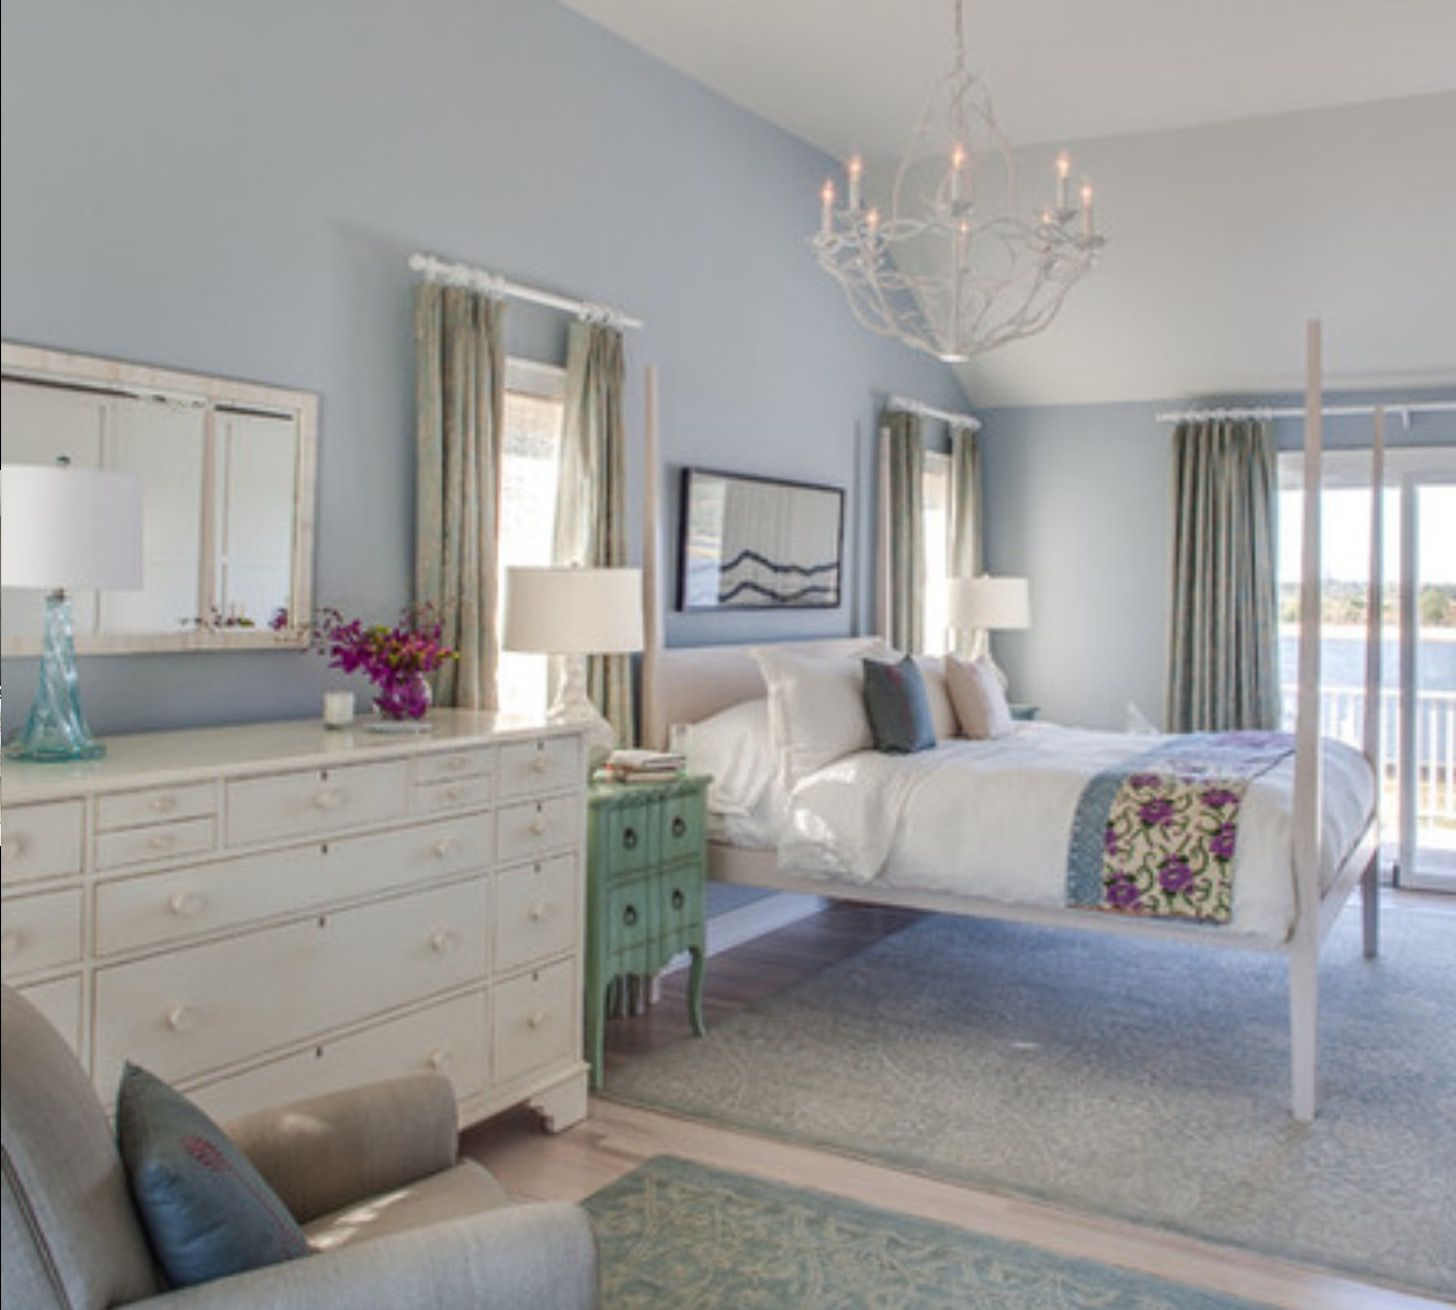 Sumptuous Bedroom Inspiration In Shades Of Silver: Benjamin Moores Silver Gray...considering This Gray With